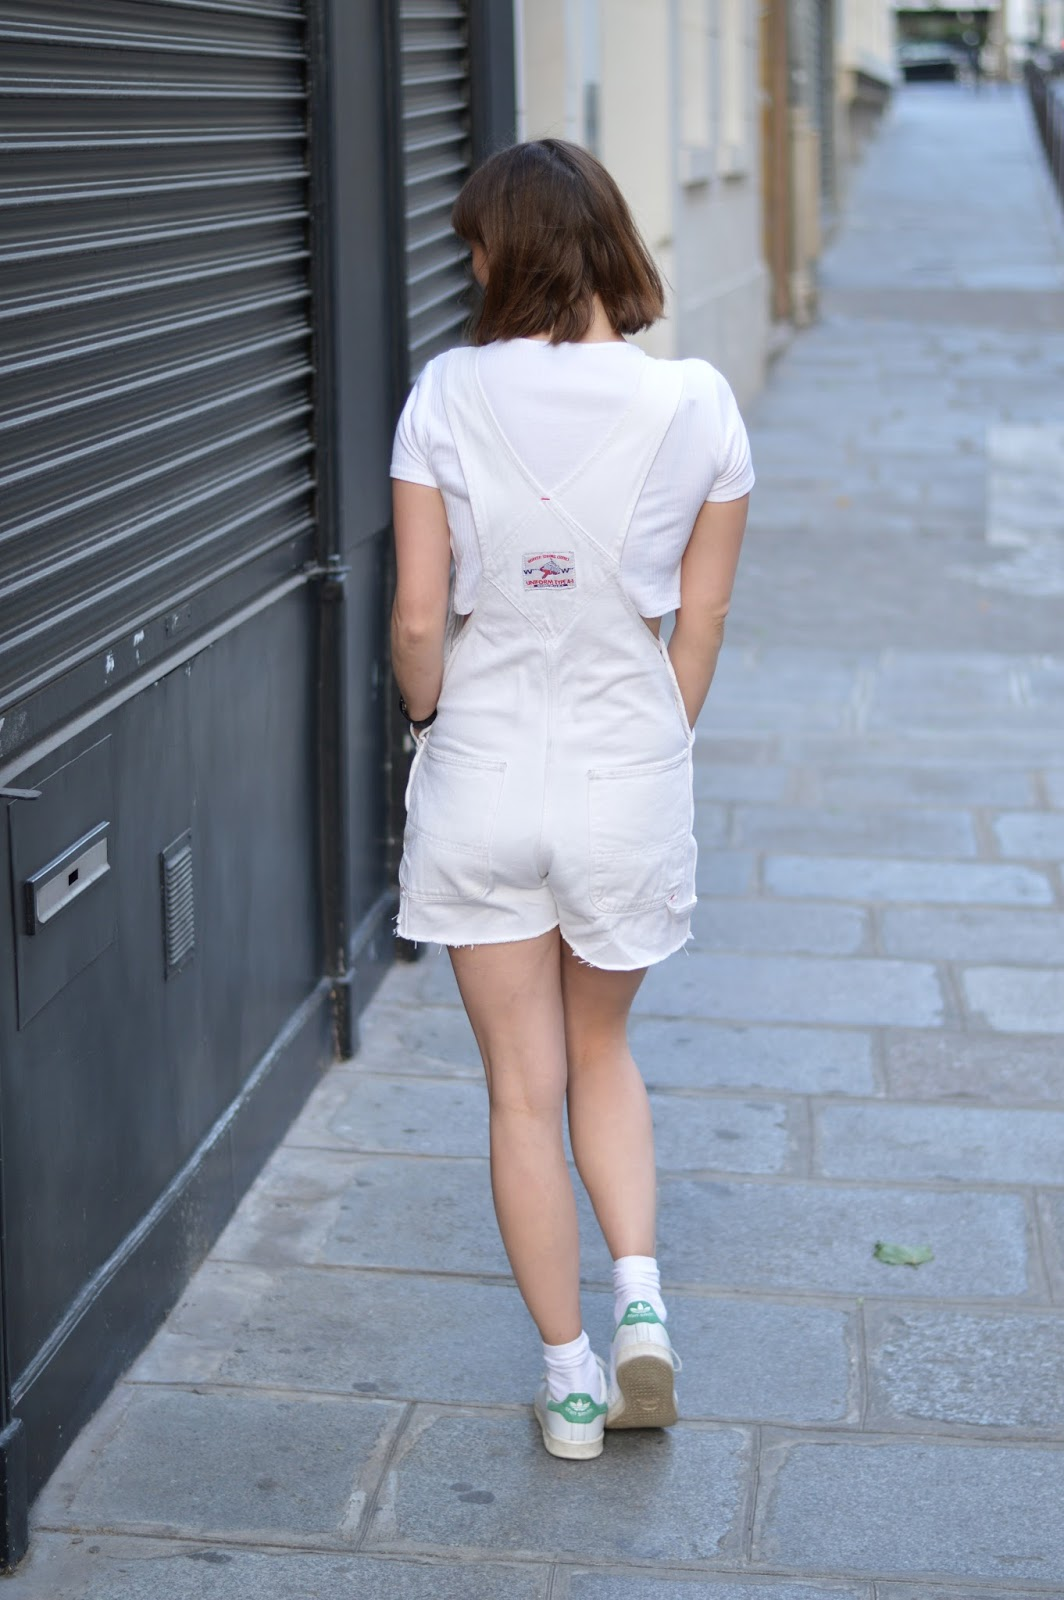 White vintage dungarees, Topshop white crop top and Adidas Stan Smiths all white outfit